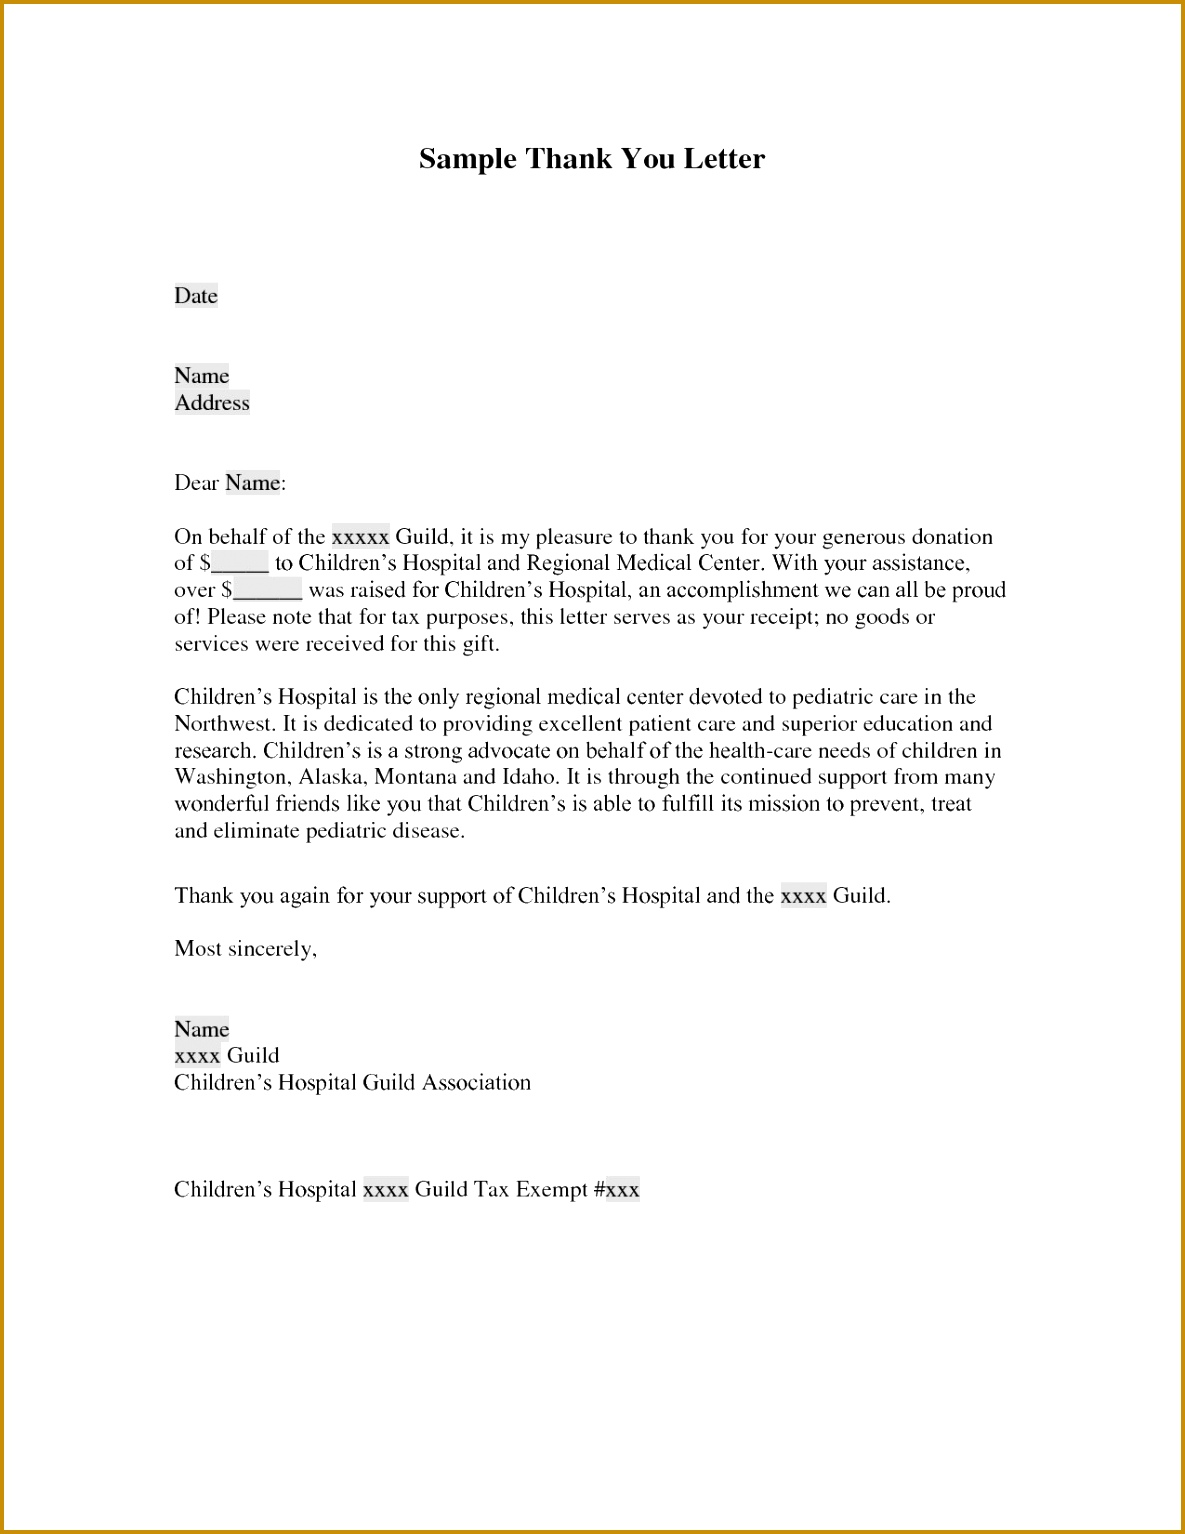 Sample Thank You Letter for Donation to School Pdf format 15341185